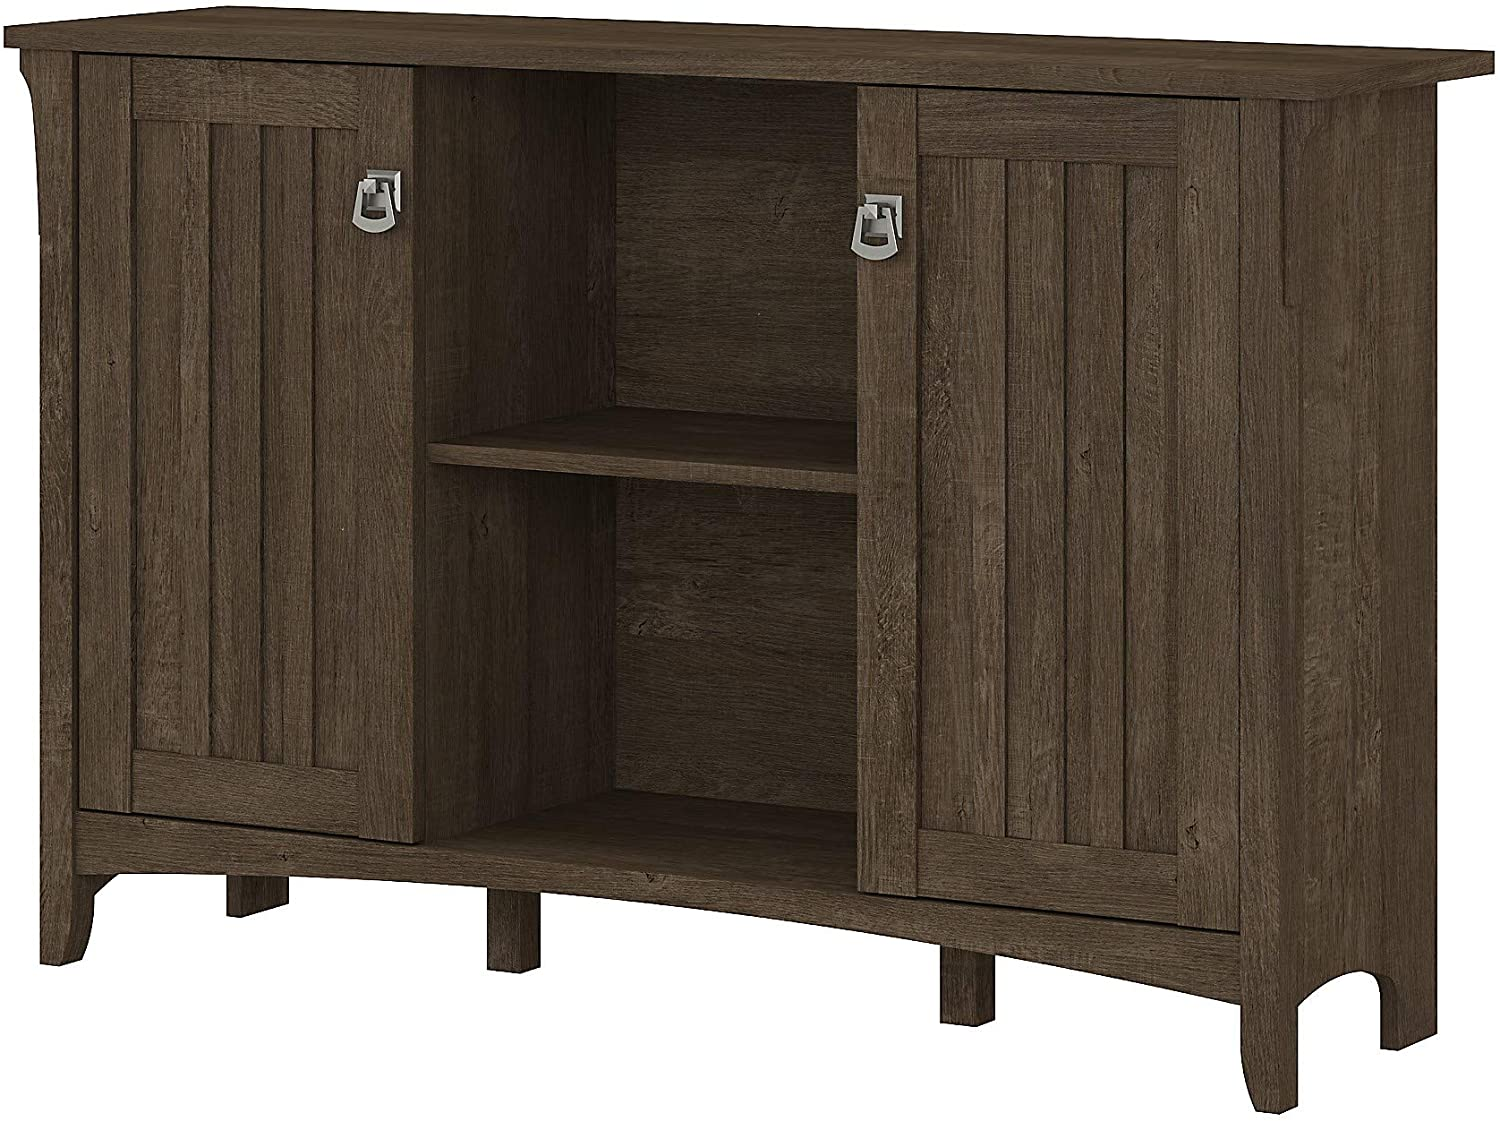 Bush Furniture Salinas Accent Storage Cabinet with Doors in Ash Brown